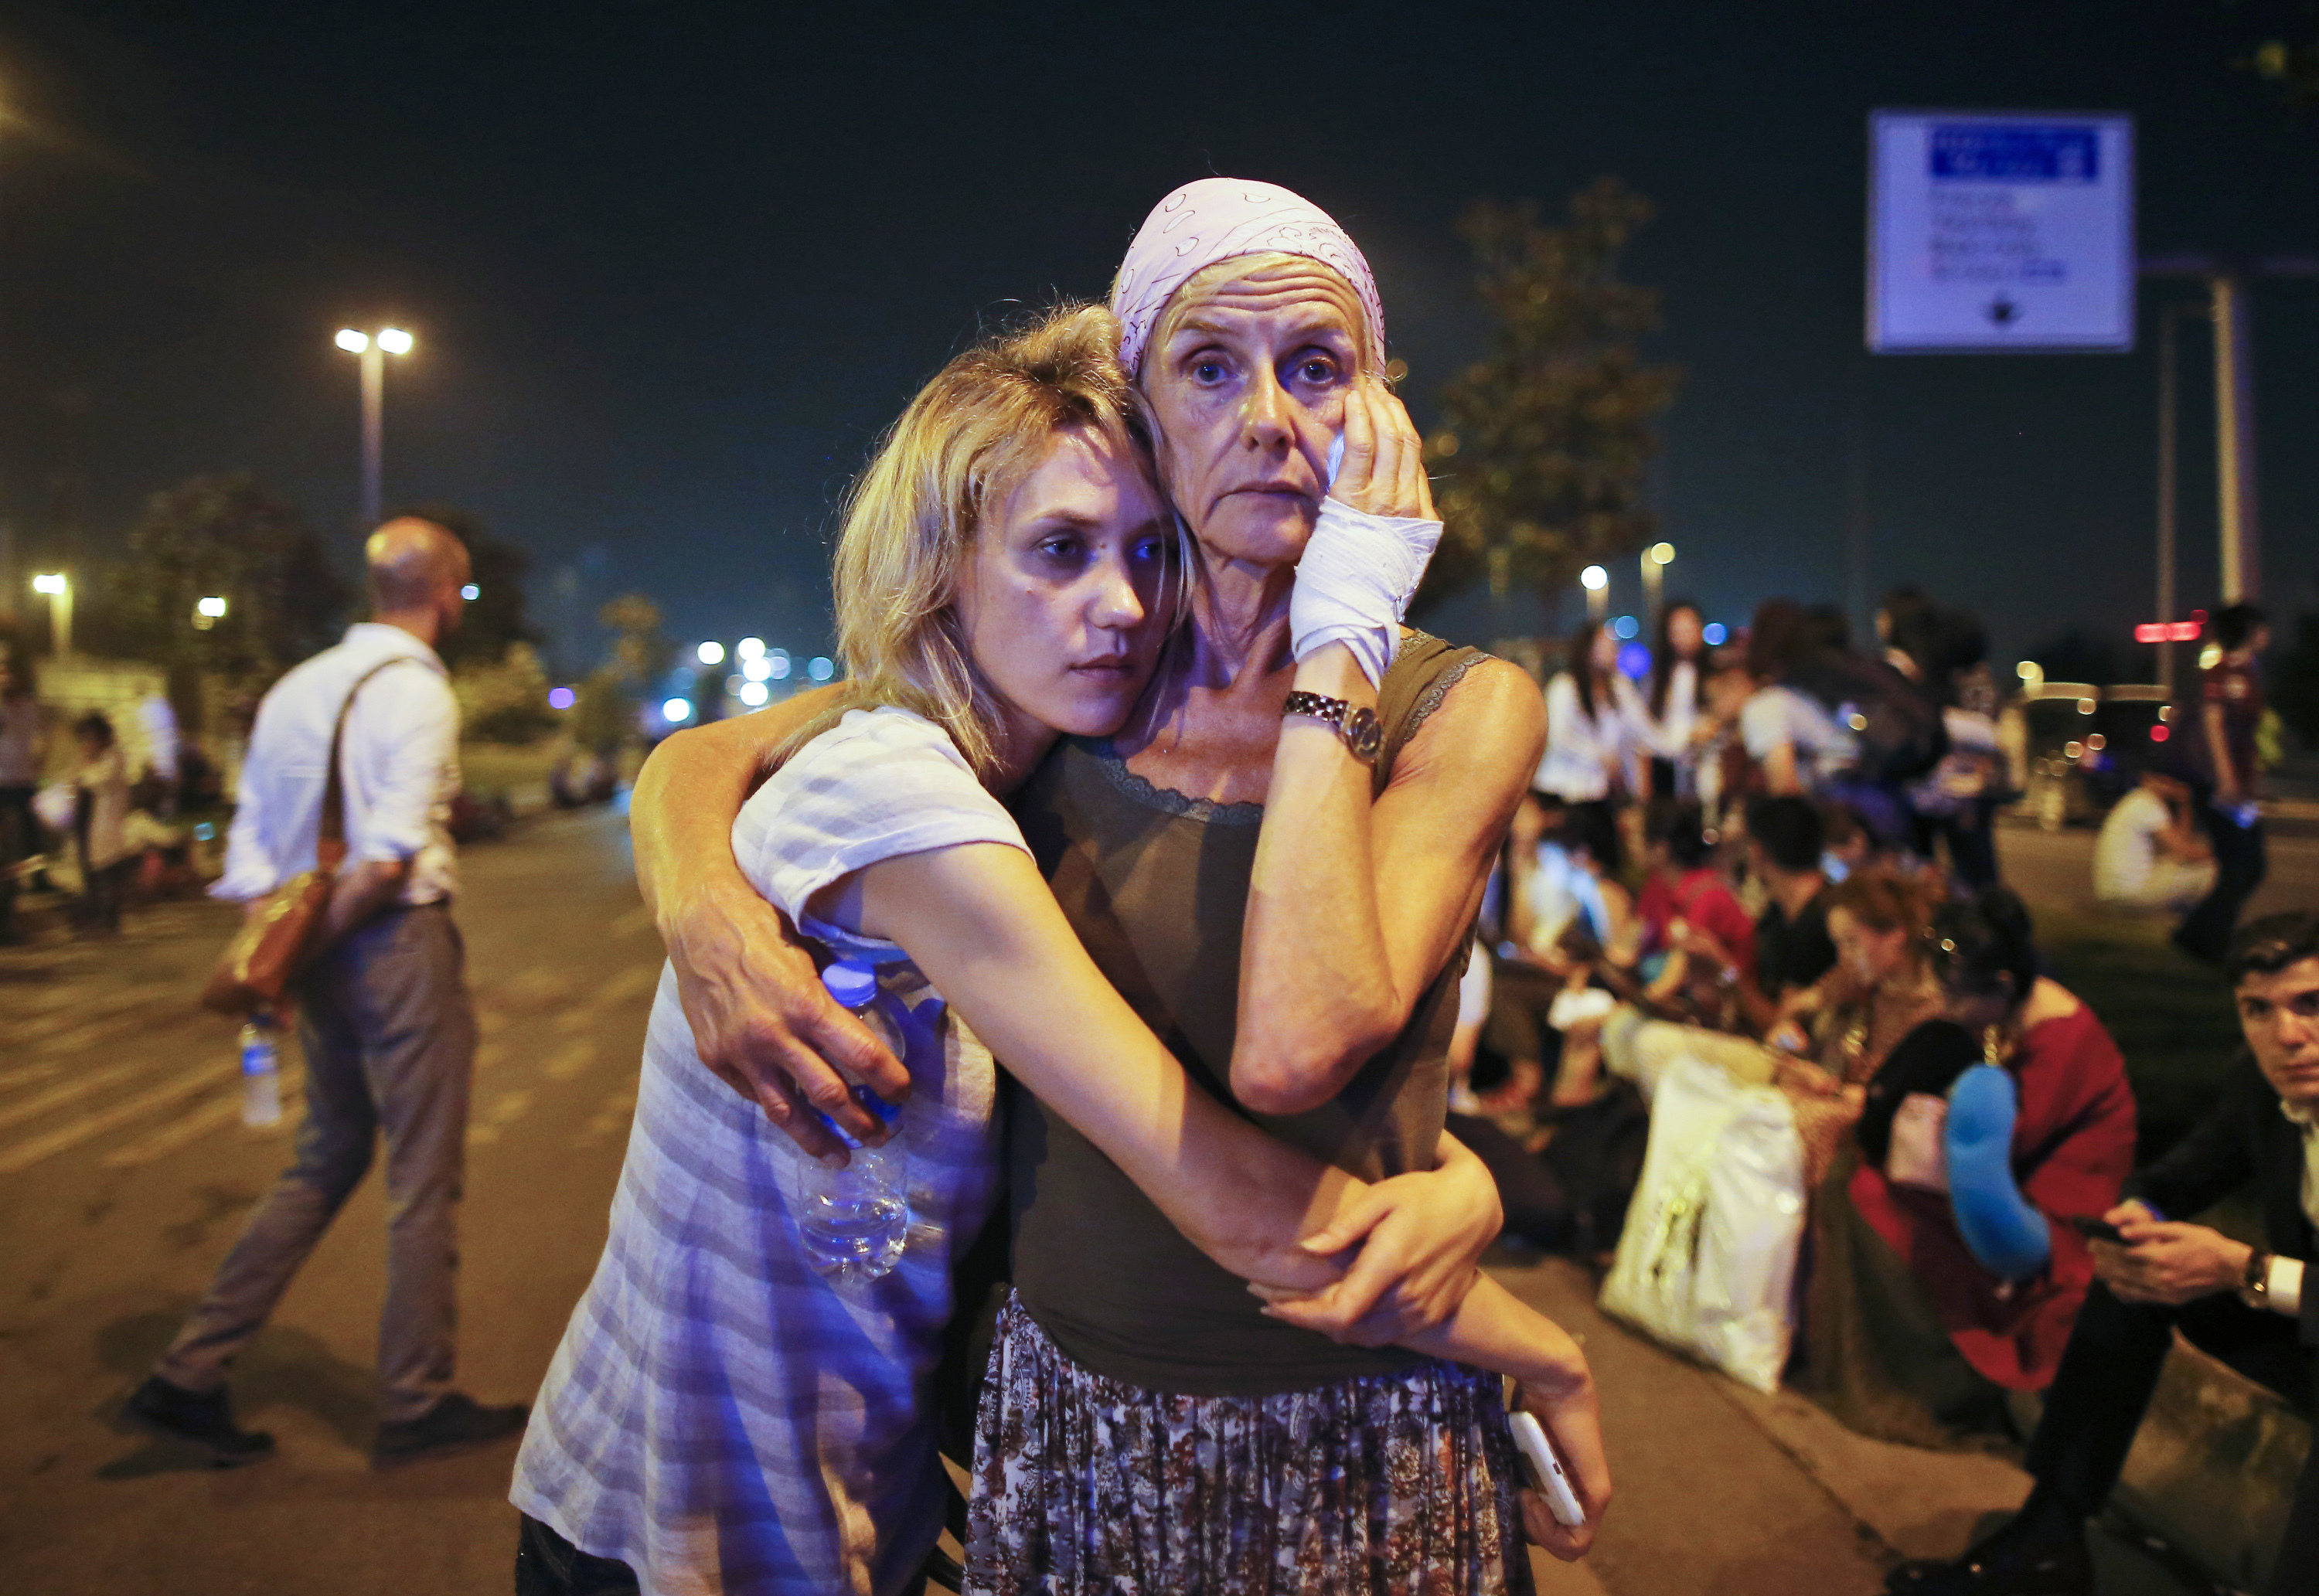 Passengers embrace each other as they wait outside Istanbul's Ataturk airport, early Wednesday, June 29, 2016 following their evacuation after a blast. Suspected Islamic State group extremists have hit the international terminal of Istanbul's Ataturk airport, killing dozens of people and wounding many others, Turkish officials said Tuesday. Turkish authorities have banned distribution of images relating to the Ataturk airport attack within Turkey. (AP Photo/Emrah Gurel) TURKEY OUT